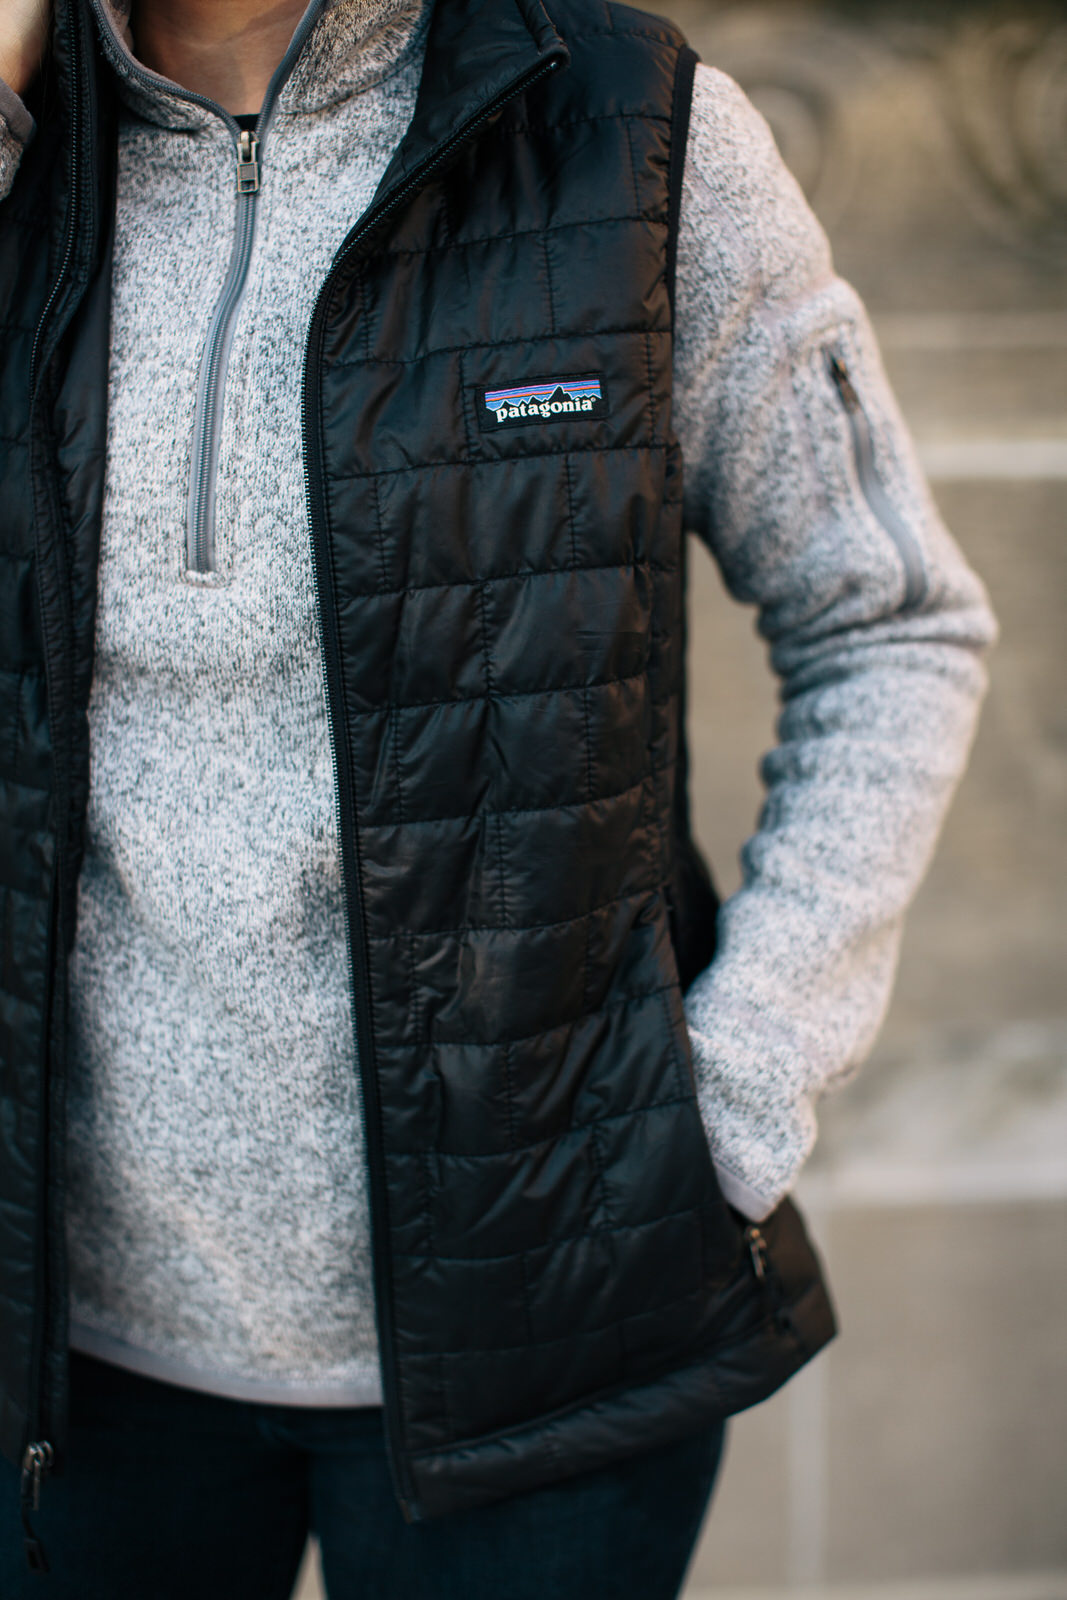 patagonia vest and better sweater for her